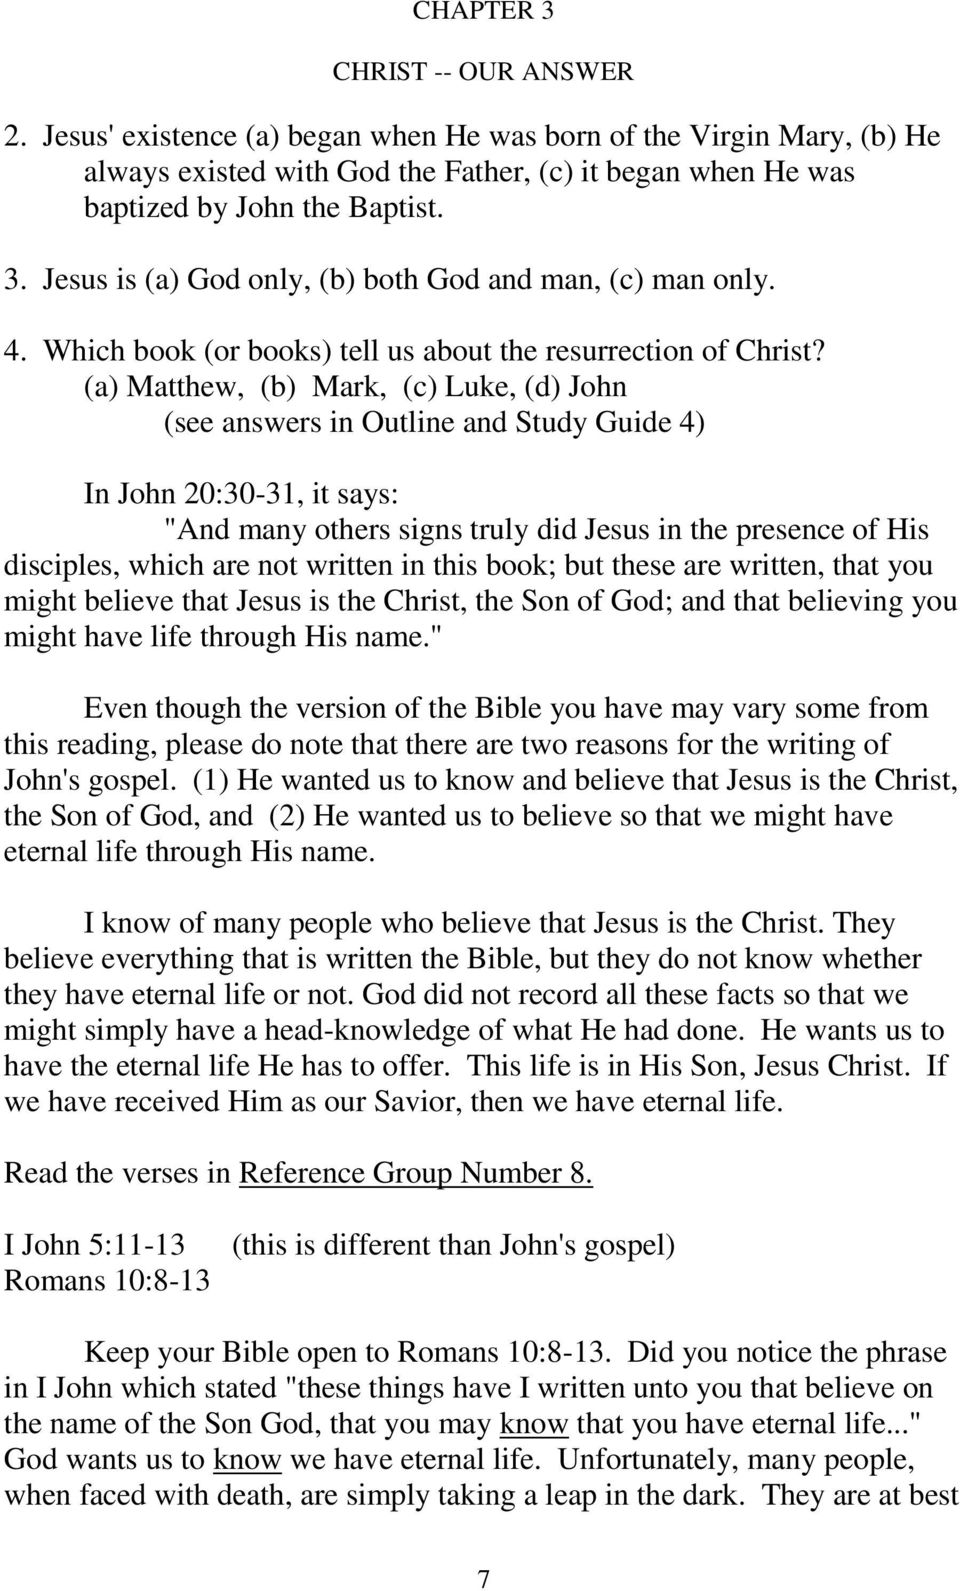 "(a) Matthew, (b) Mark, (c) Luke, (d) John (see answers in Outline and Study Guide 4) In John 20:30-31, it says: ""And many others signs truly did Jesus in the presence of His disciples, which are not"